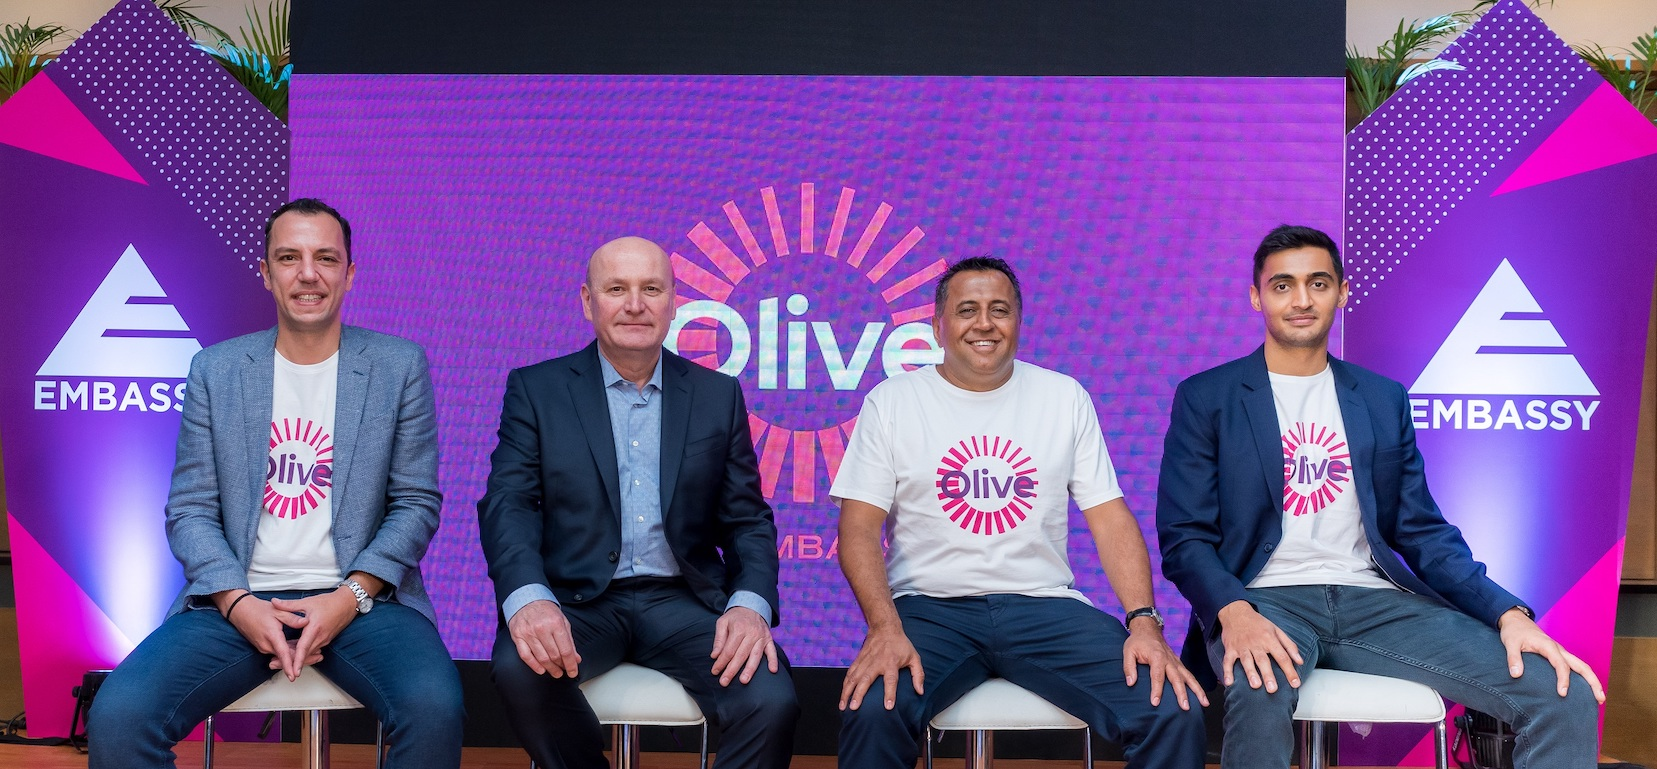 Olive will launch its first experiential center in the heart of Whitefield in Bangalore and its flagship project in Chennai with 2500 beds this year. The expansion plans include Bengaluru, Hyderabad, Mumbai, Pune and Delhi NCR with a vision to take the brand international over the next few years. The first phase will see the launch of 20,000 beds in total; Bangalore - 15,000, Chennai - 2500 and Pune – 2500. The projects in Bengaluru include large facilities at Embassy Manyata Business Park and Embassy Techvillage, Magarpatta and Hinjenwadi in Pune and OMR in Chennai. Olive by Embassy projects will range from 500 to 5,000 beds and be customized with diverse formats and priced competitively to suit respective markets.